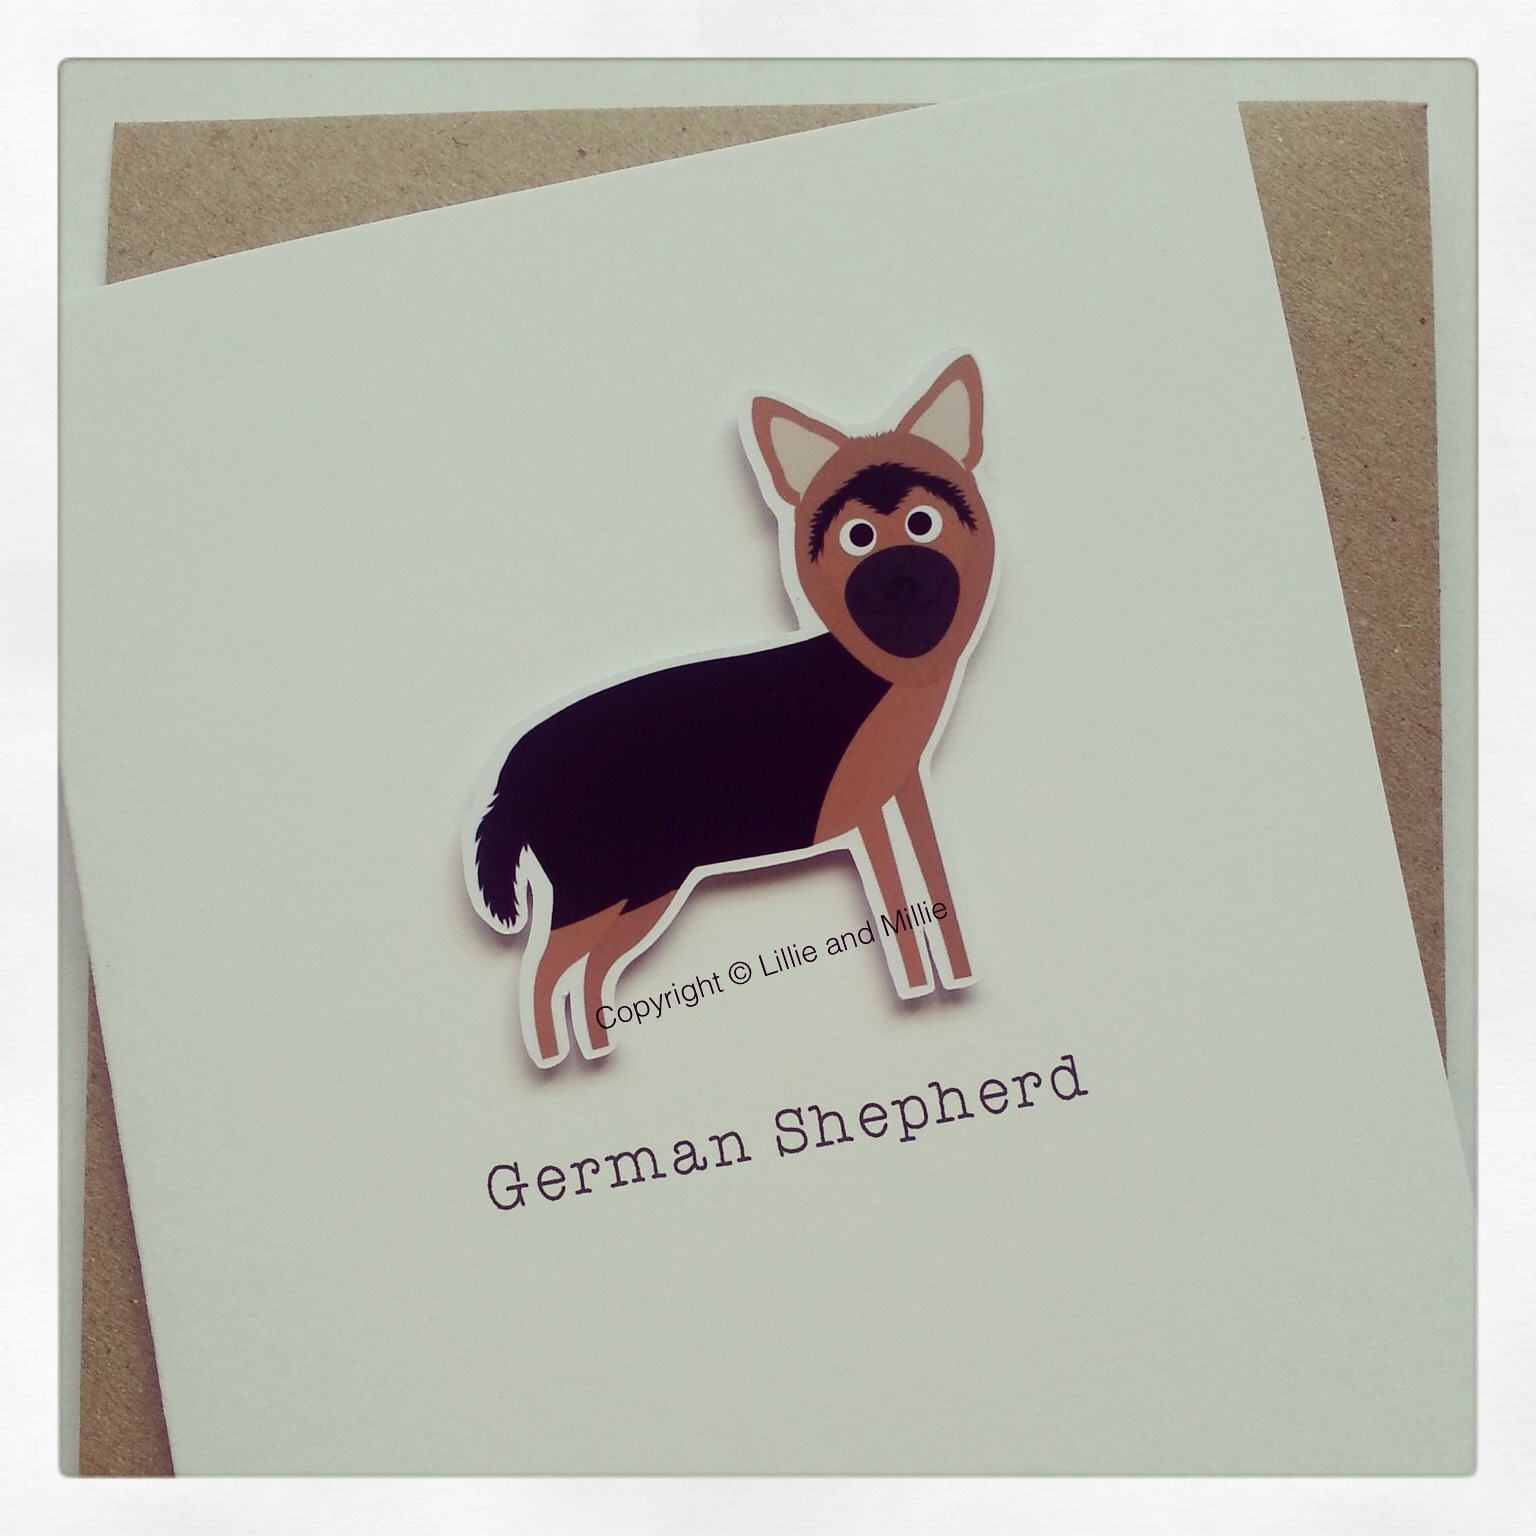 German Shepherd Dog Greetings Card